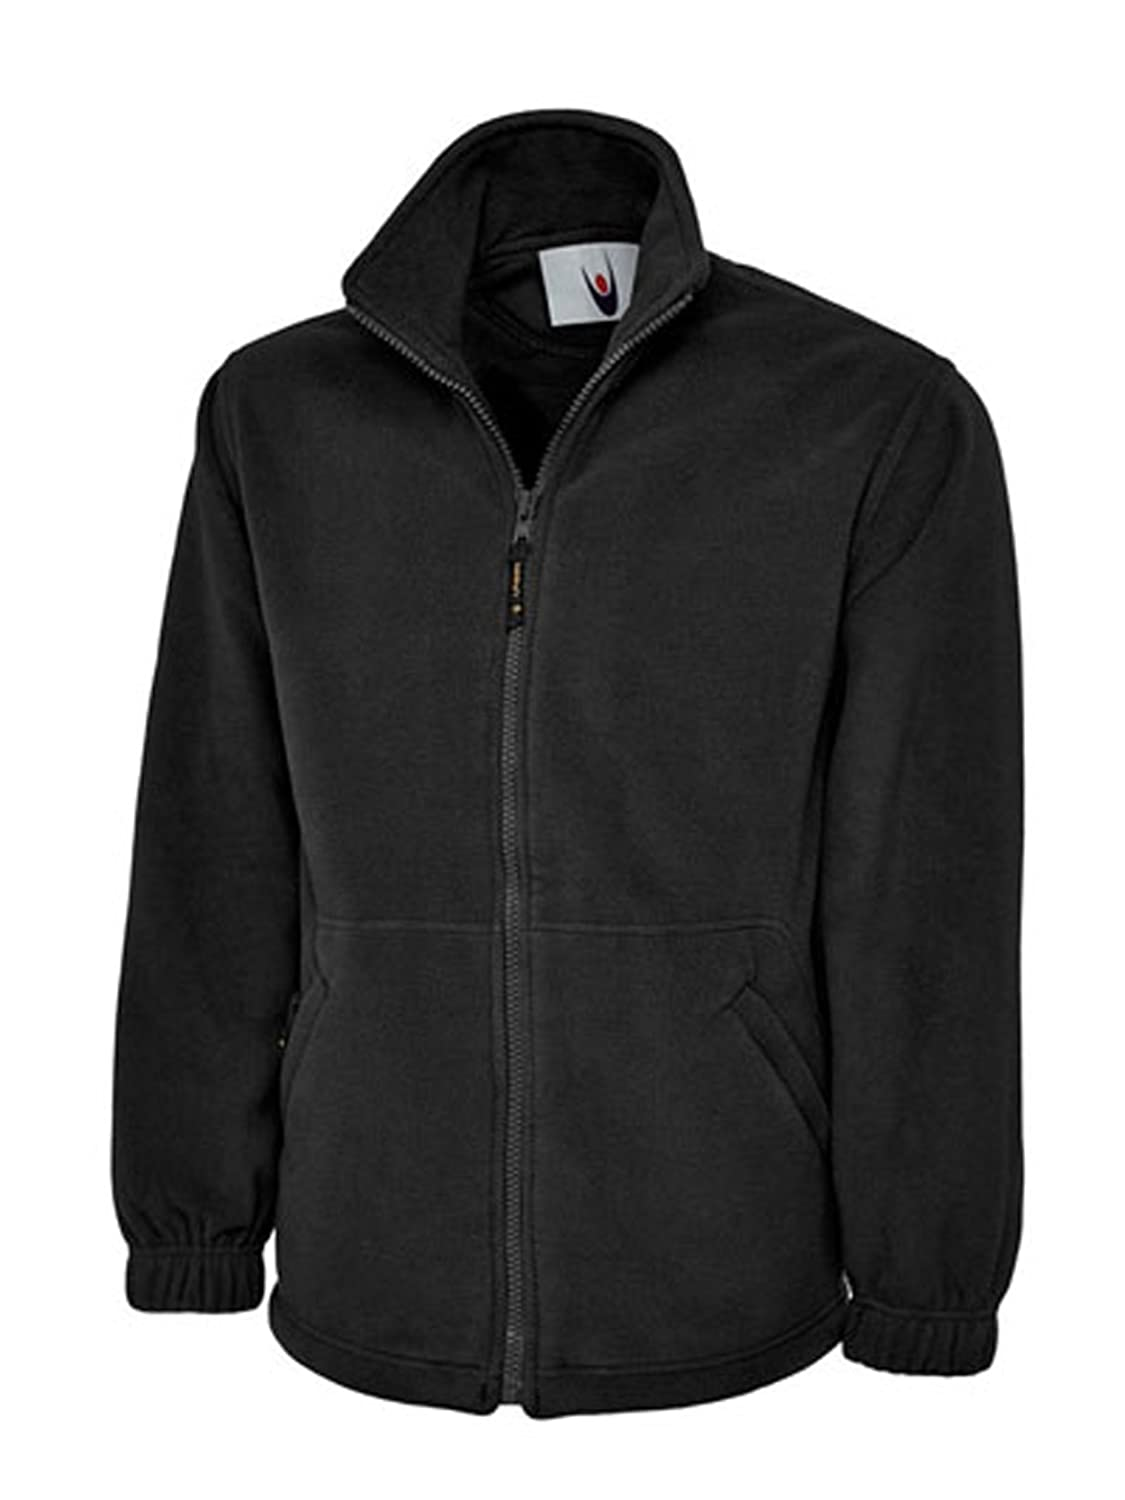 Ladies Full Zip Classic Fleece Jackets Sizes 8 to 30 - SUITABLE ...